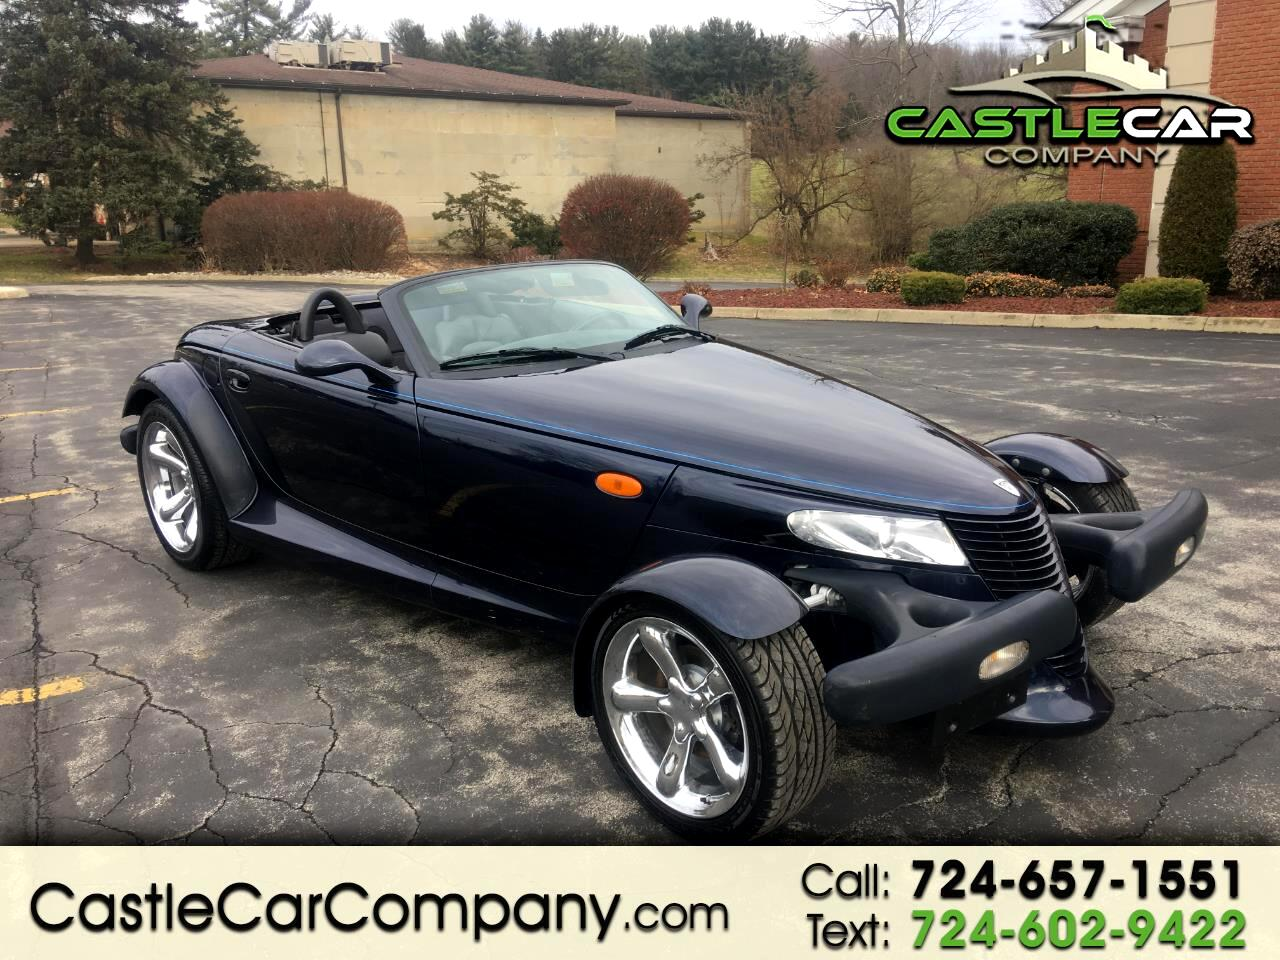 2001 Plymouth Prowler 2dr Roadster